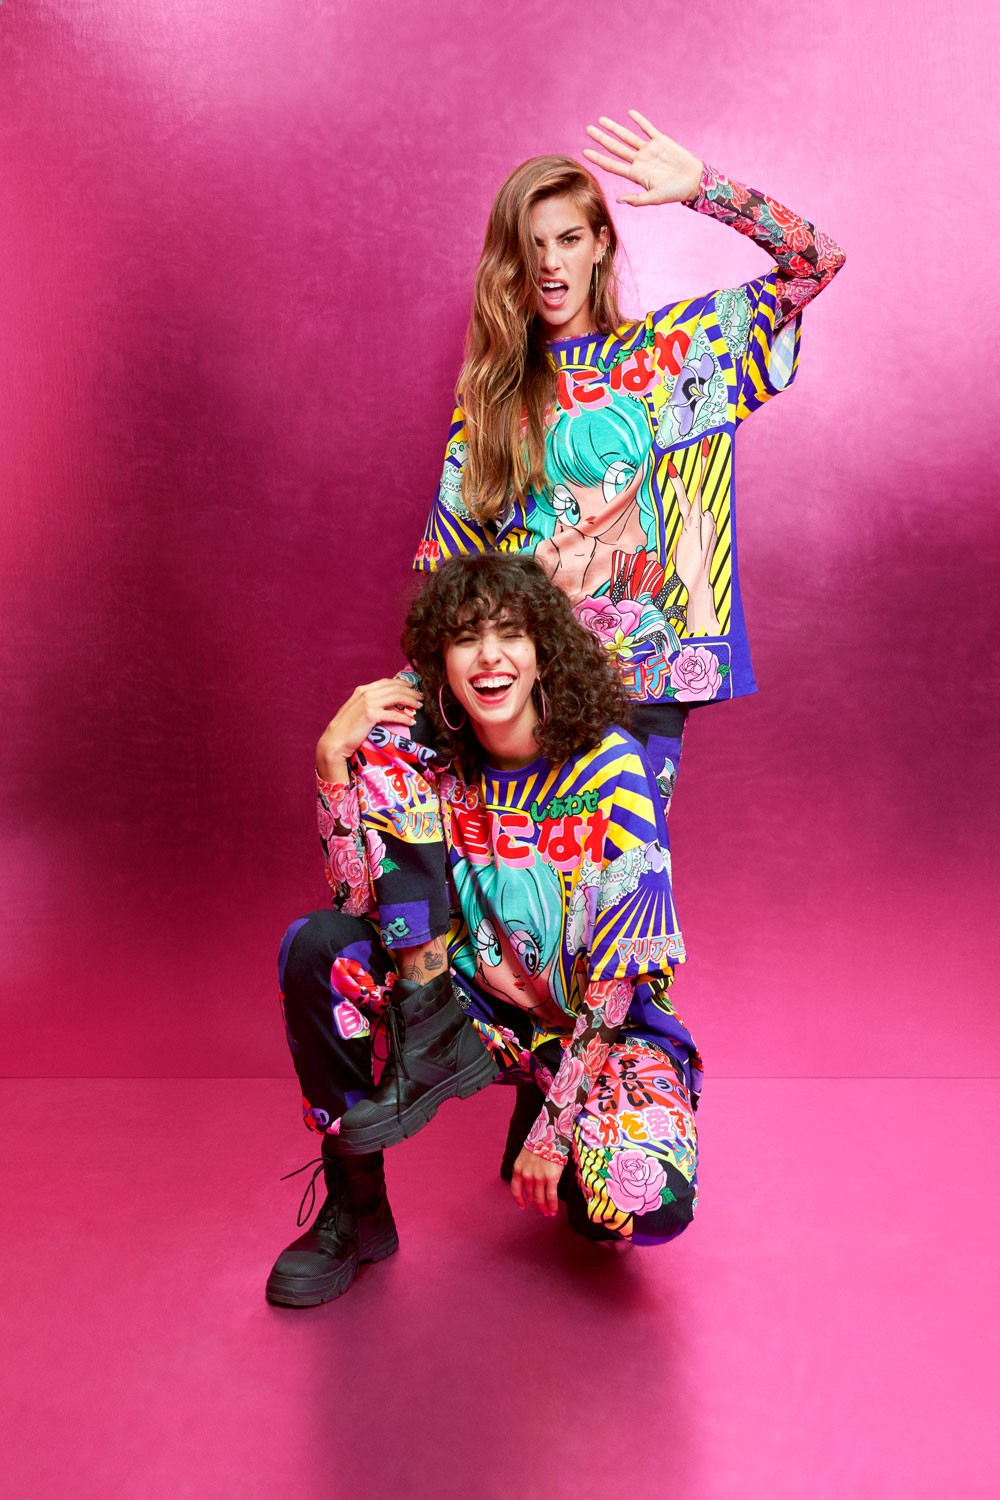 Desigual releases Fall/Winter 2020 Capsule Collection with María Escoté